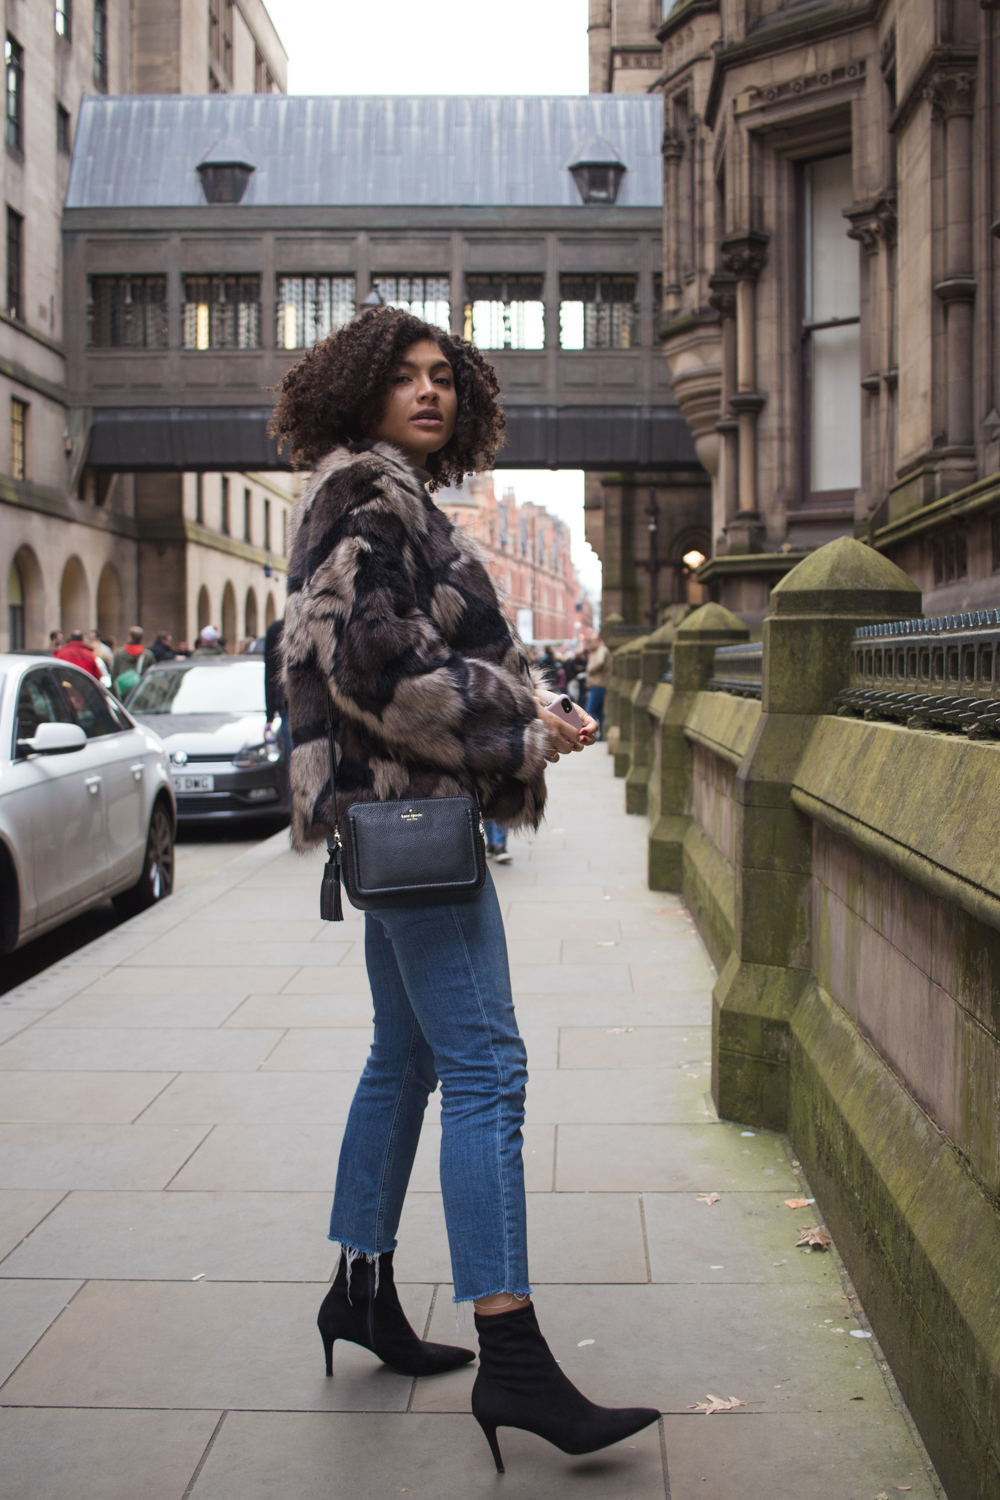 Marks and Spencer Stiletto Heel Stretch Ankle Boots and jeans outfit Manchester